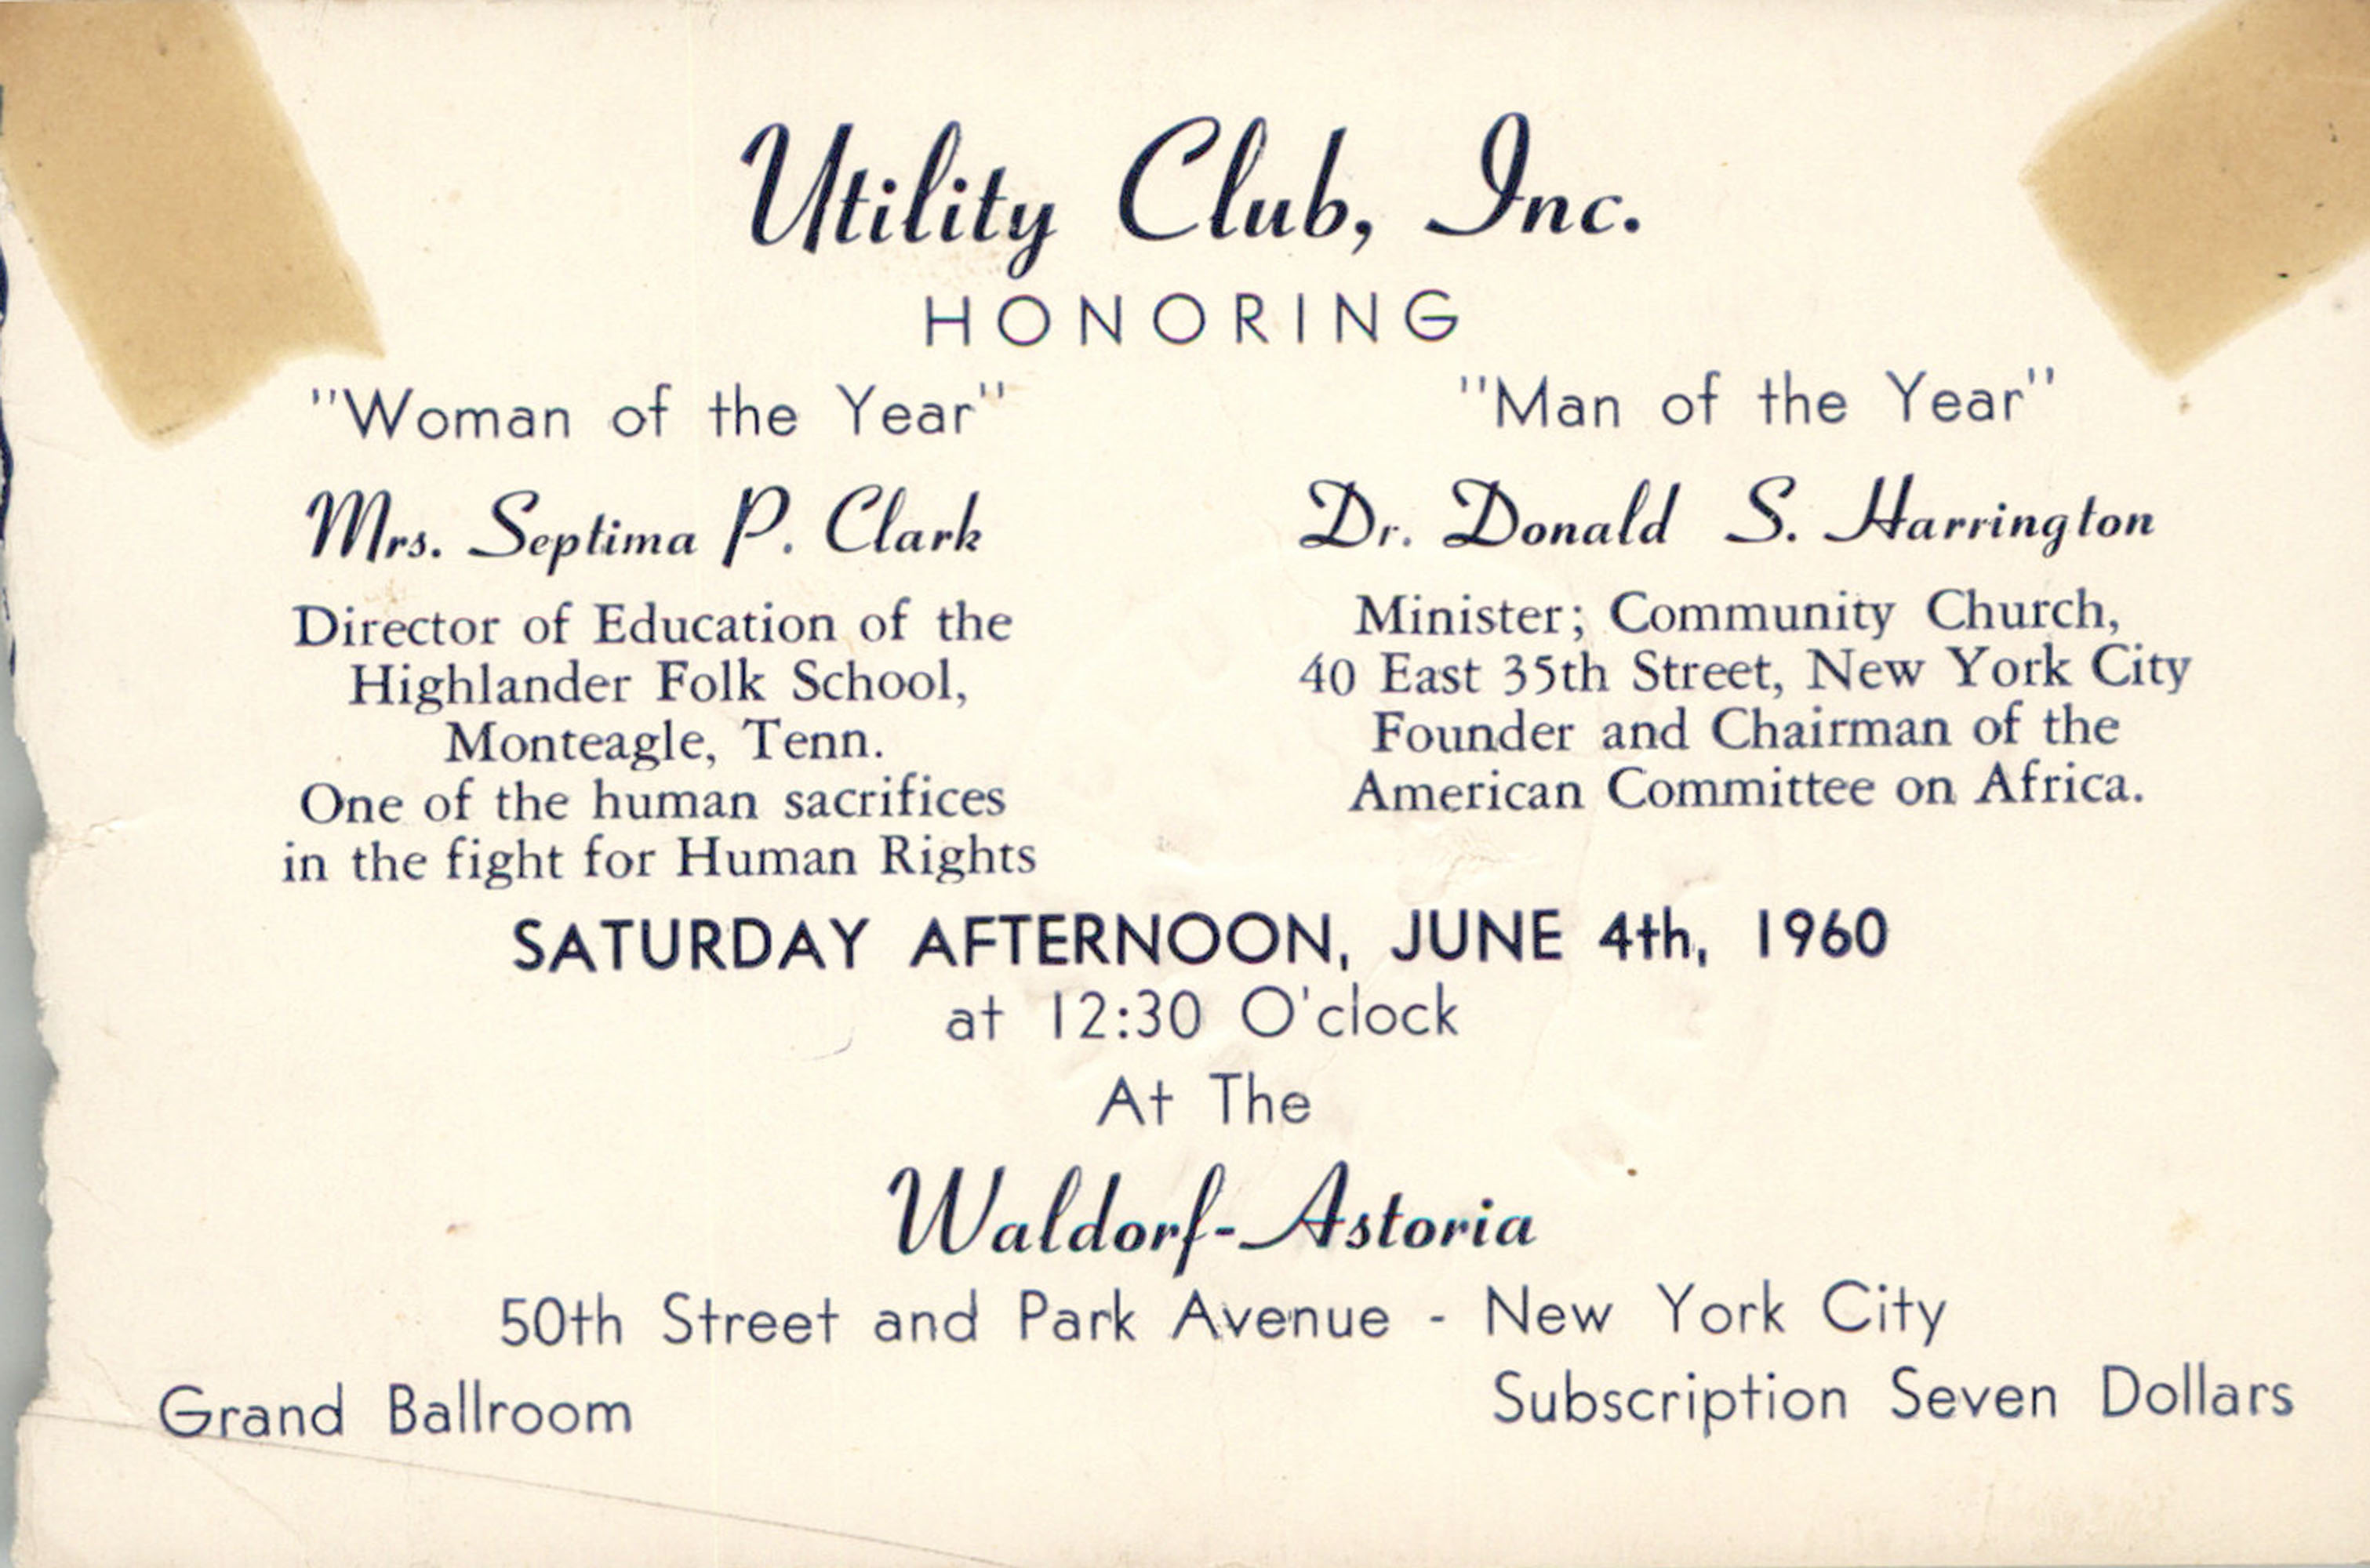 Invitation, June 4, 1960